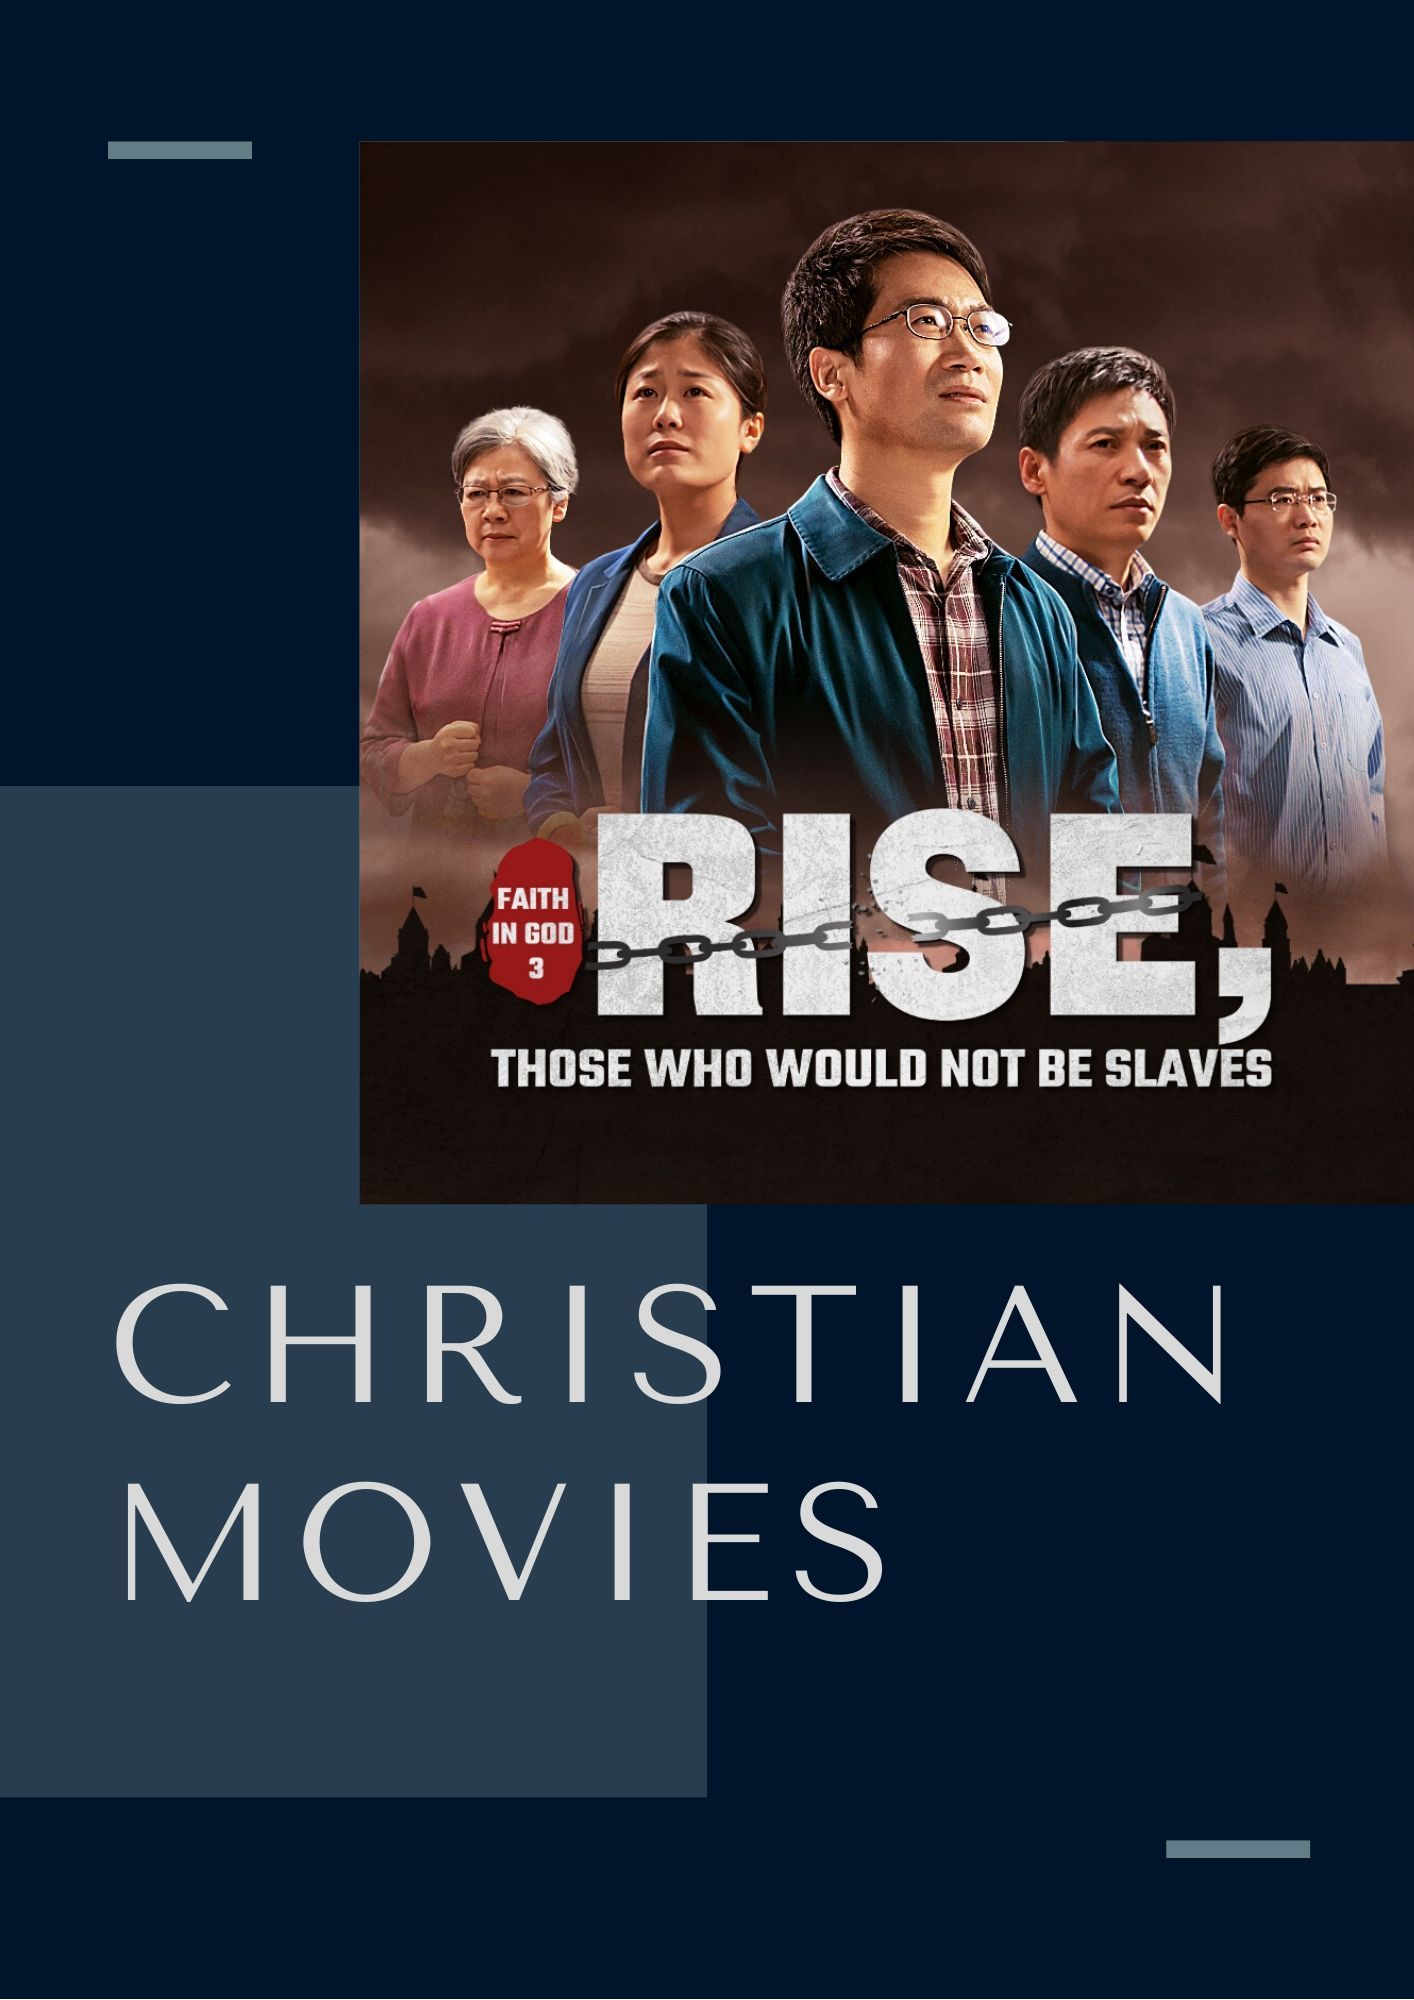 2020 Full Christian Movie Faith In God 3 Rise Those Who Would Not Be Slaves English Dubbed Christian Movies Christian Films The Bible Movie